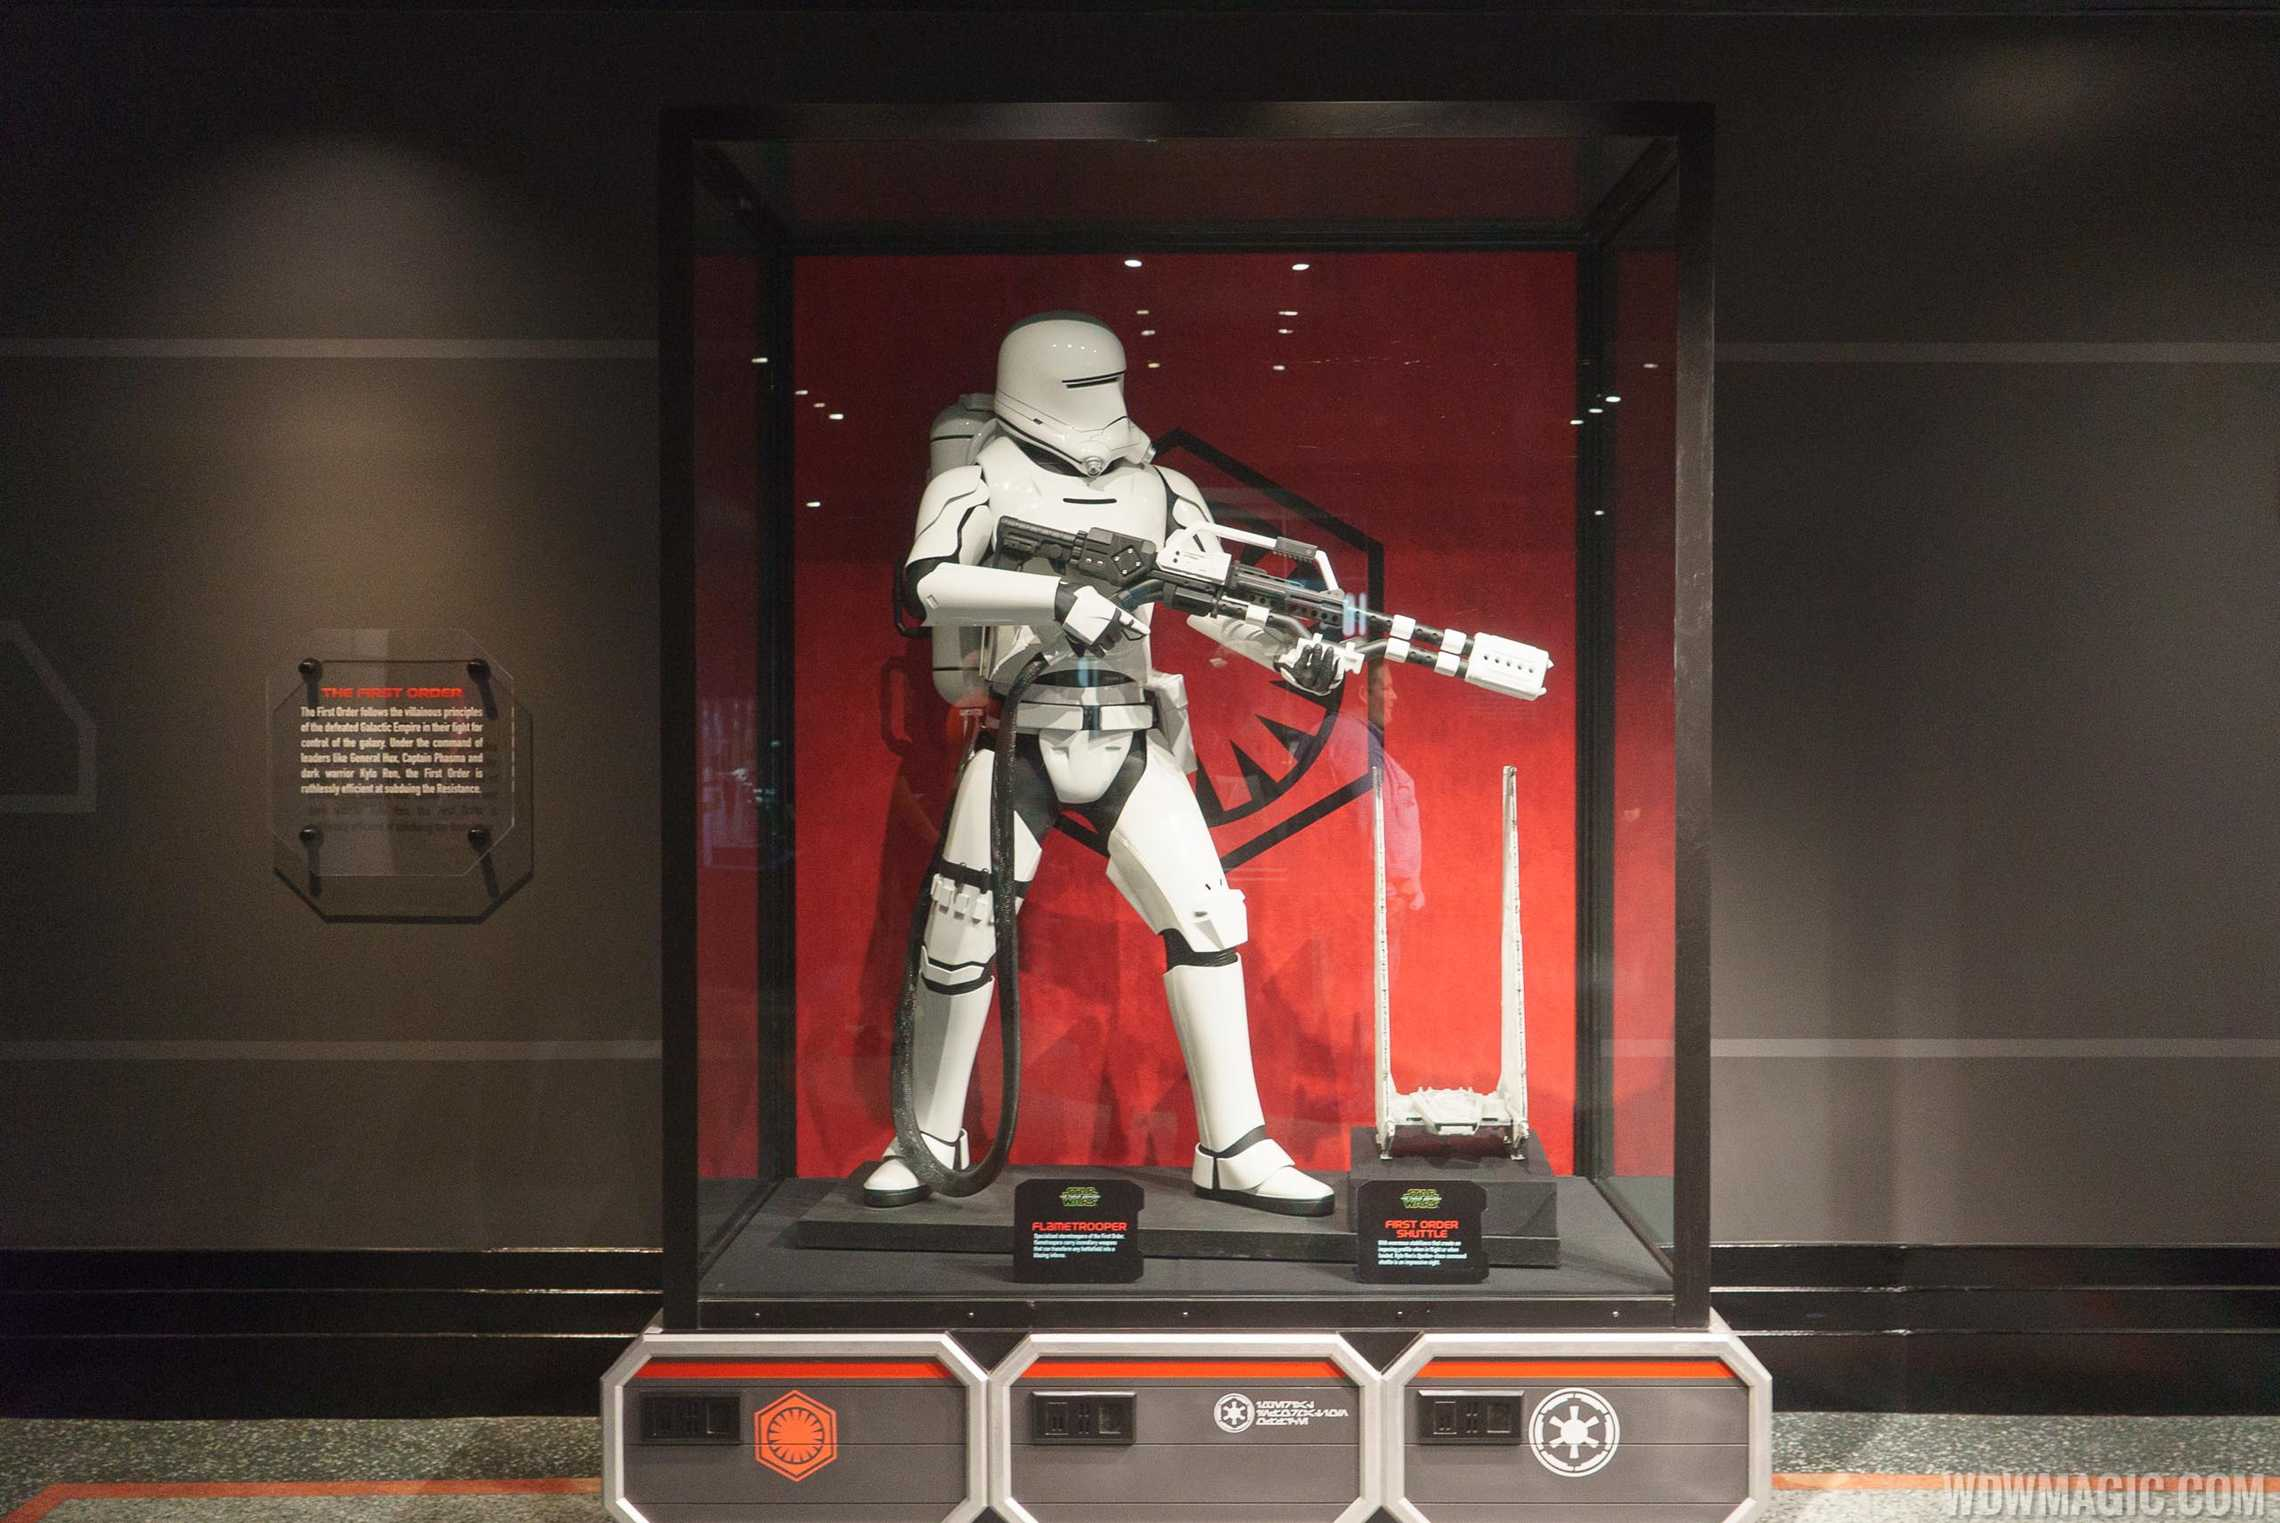 Star Wars Launch Bay - First Order at the Preview Gallery